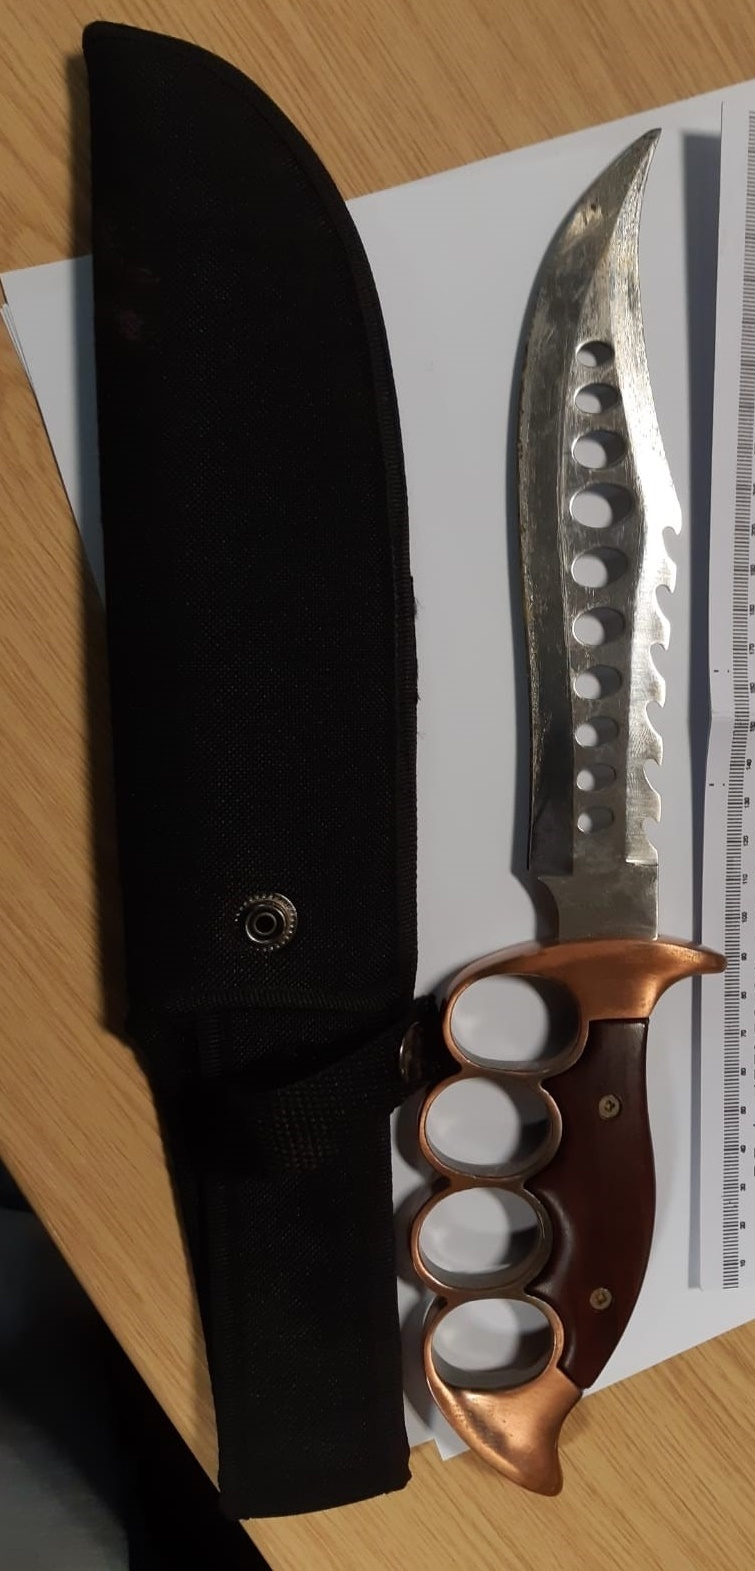 This knife is now in the safe hands of the police after being discovered in South Oxhey. Picture: Herts Police